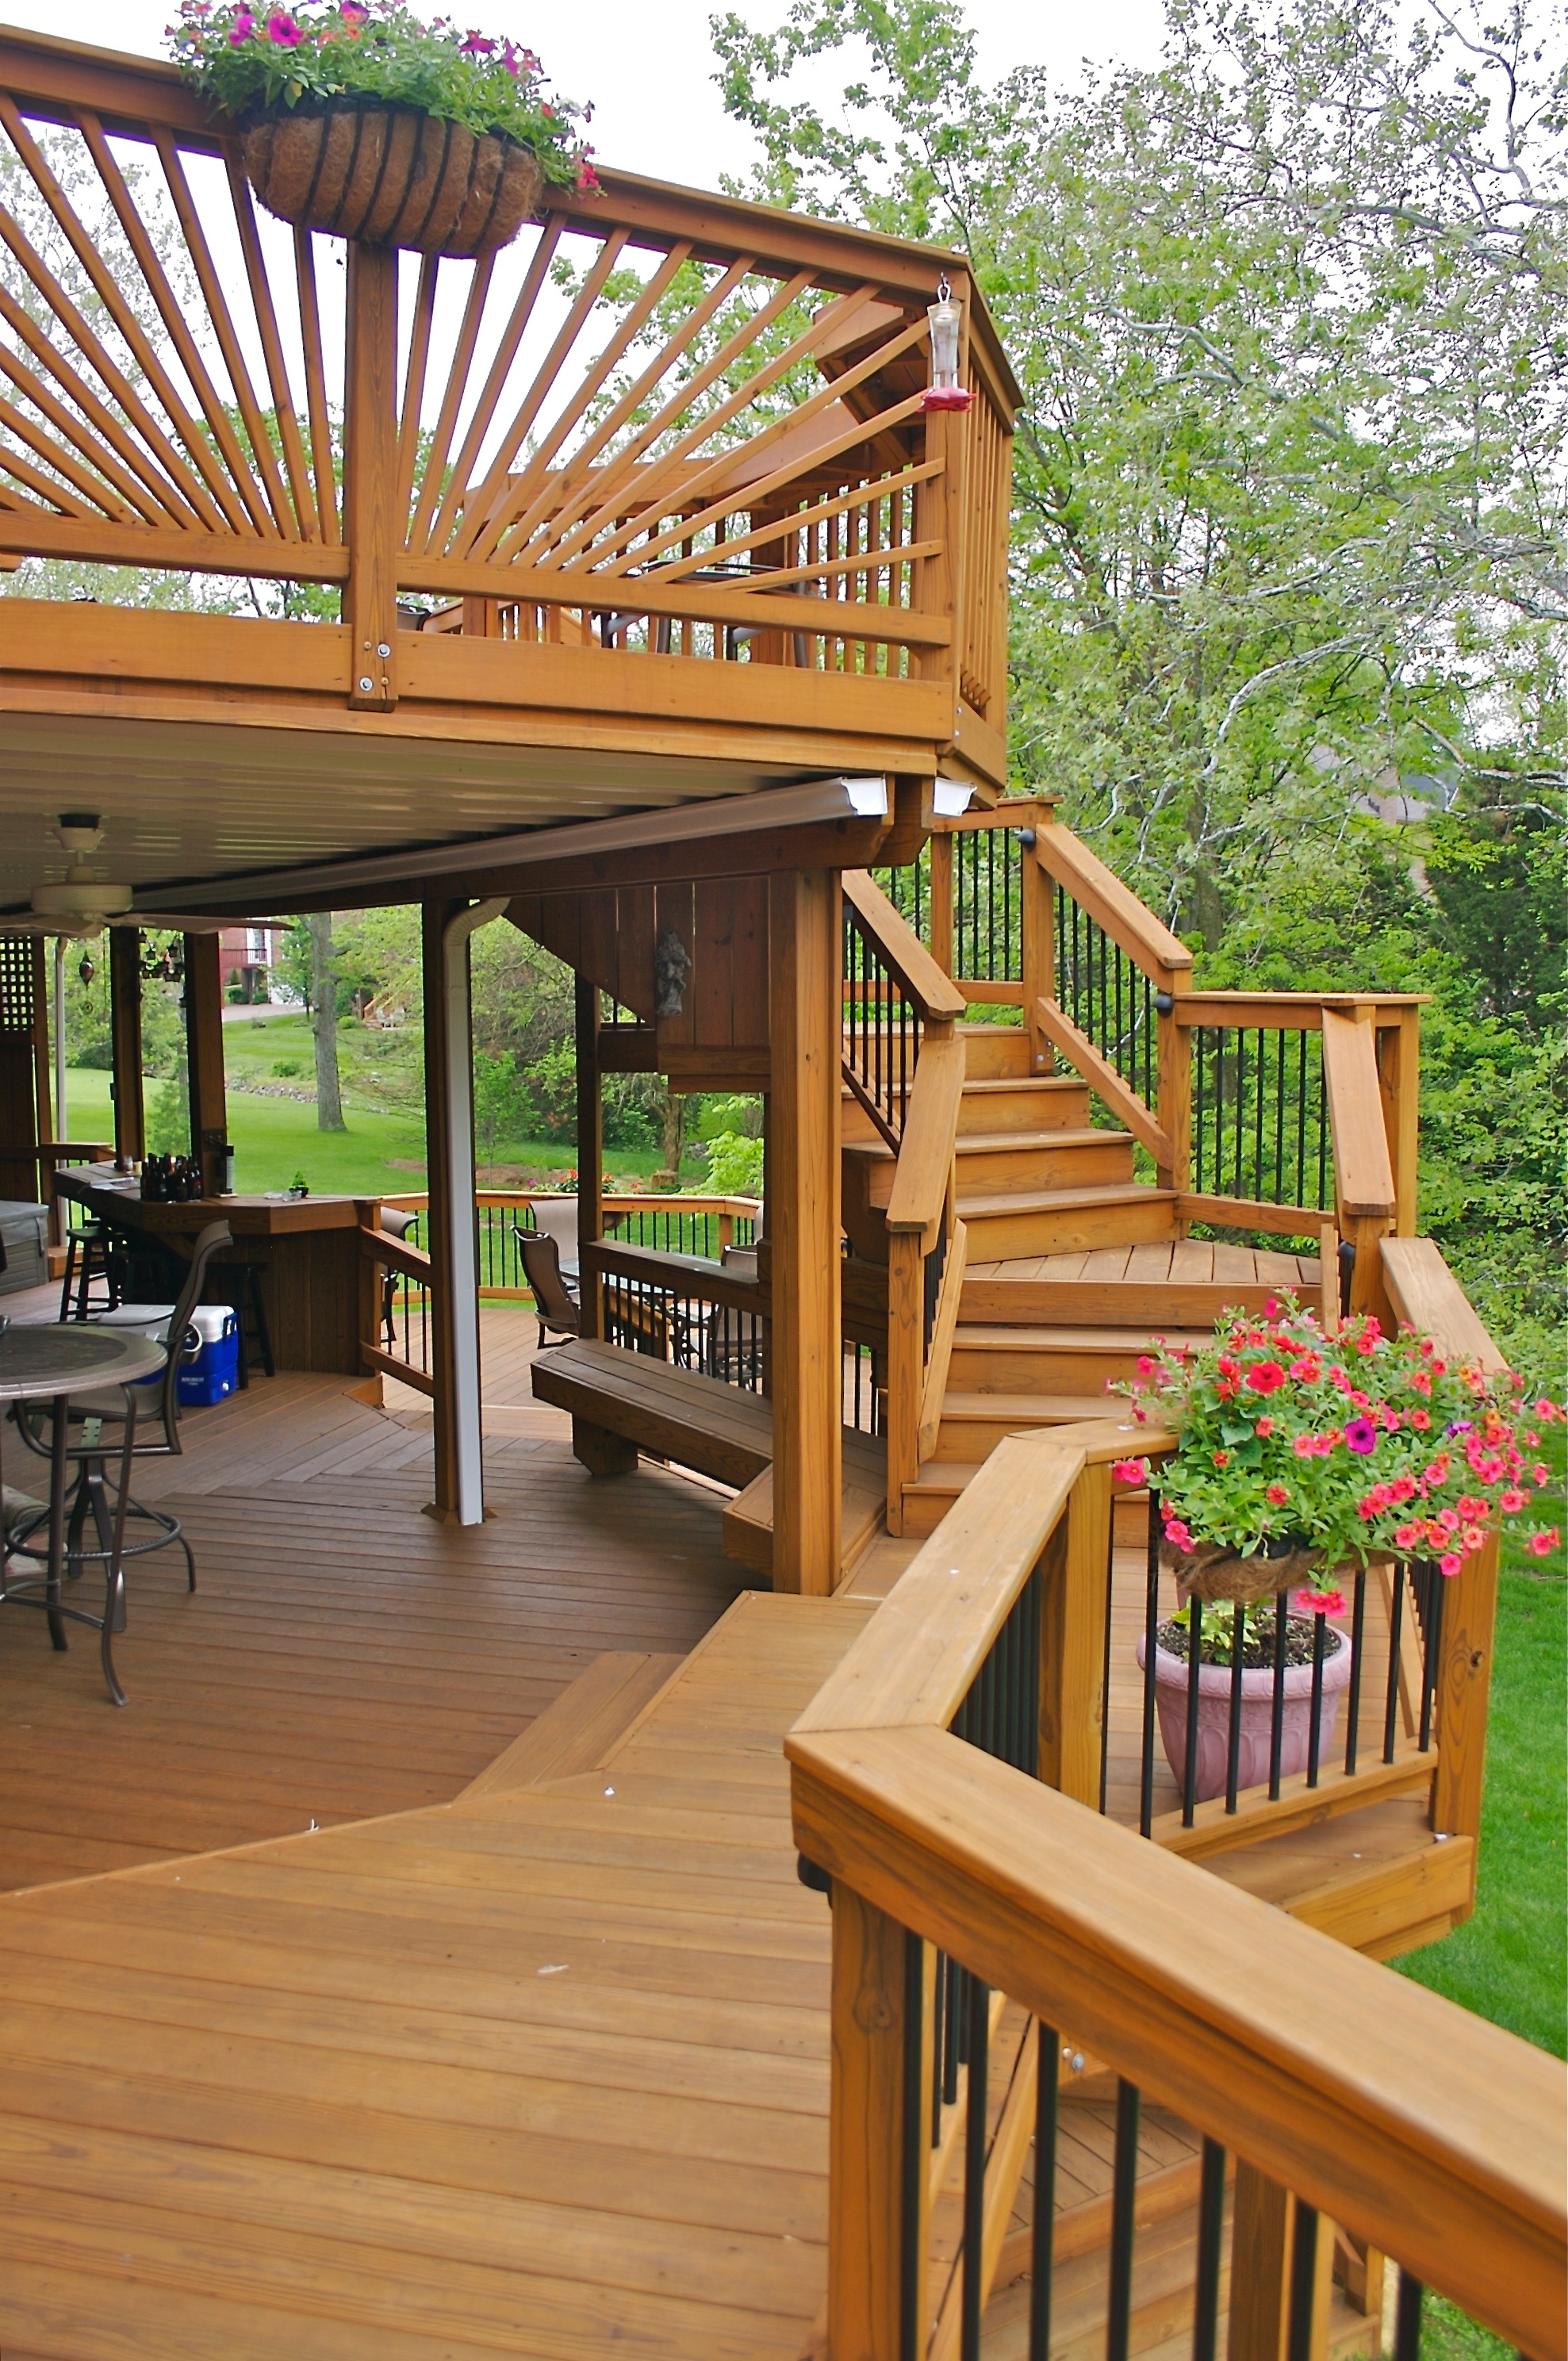 Designing Custom Decks In Illinois By American Deck & Sunroom